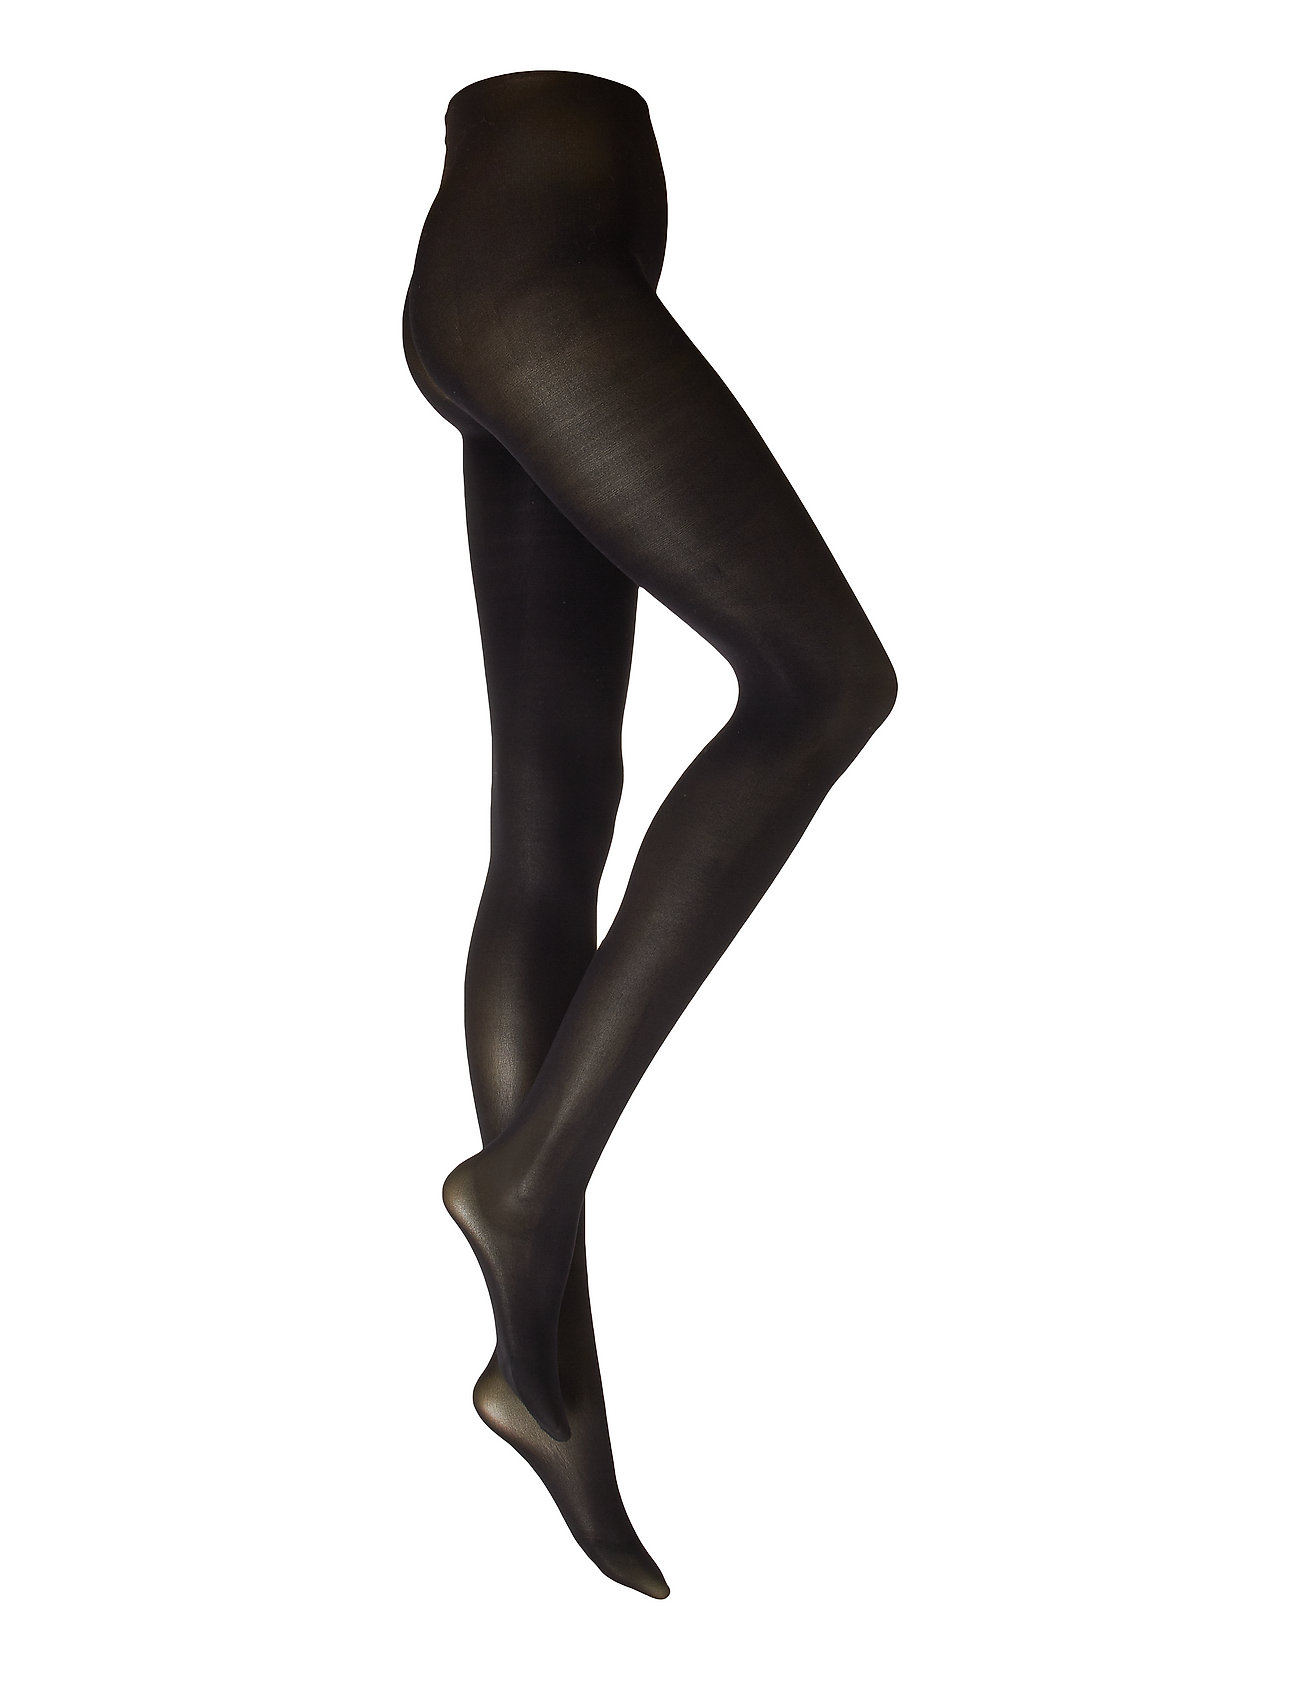 Decoy Ladies tights Microfiber 60den